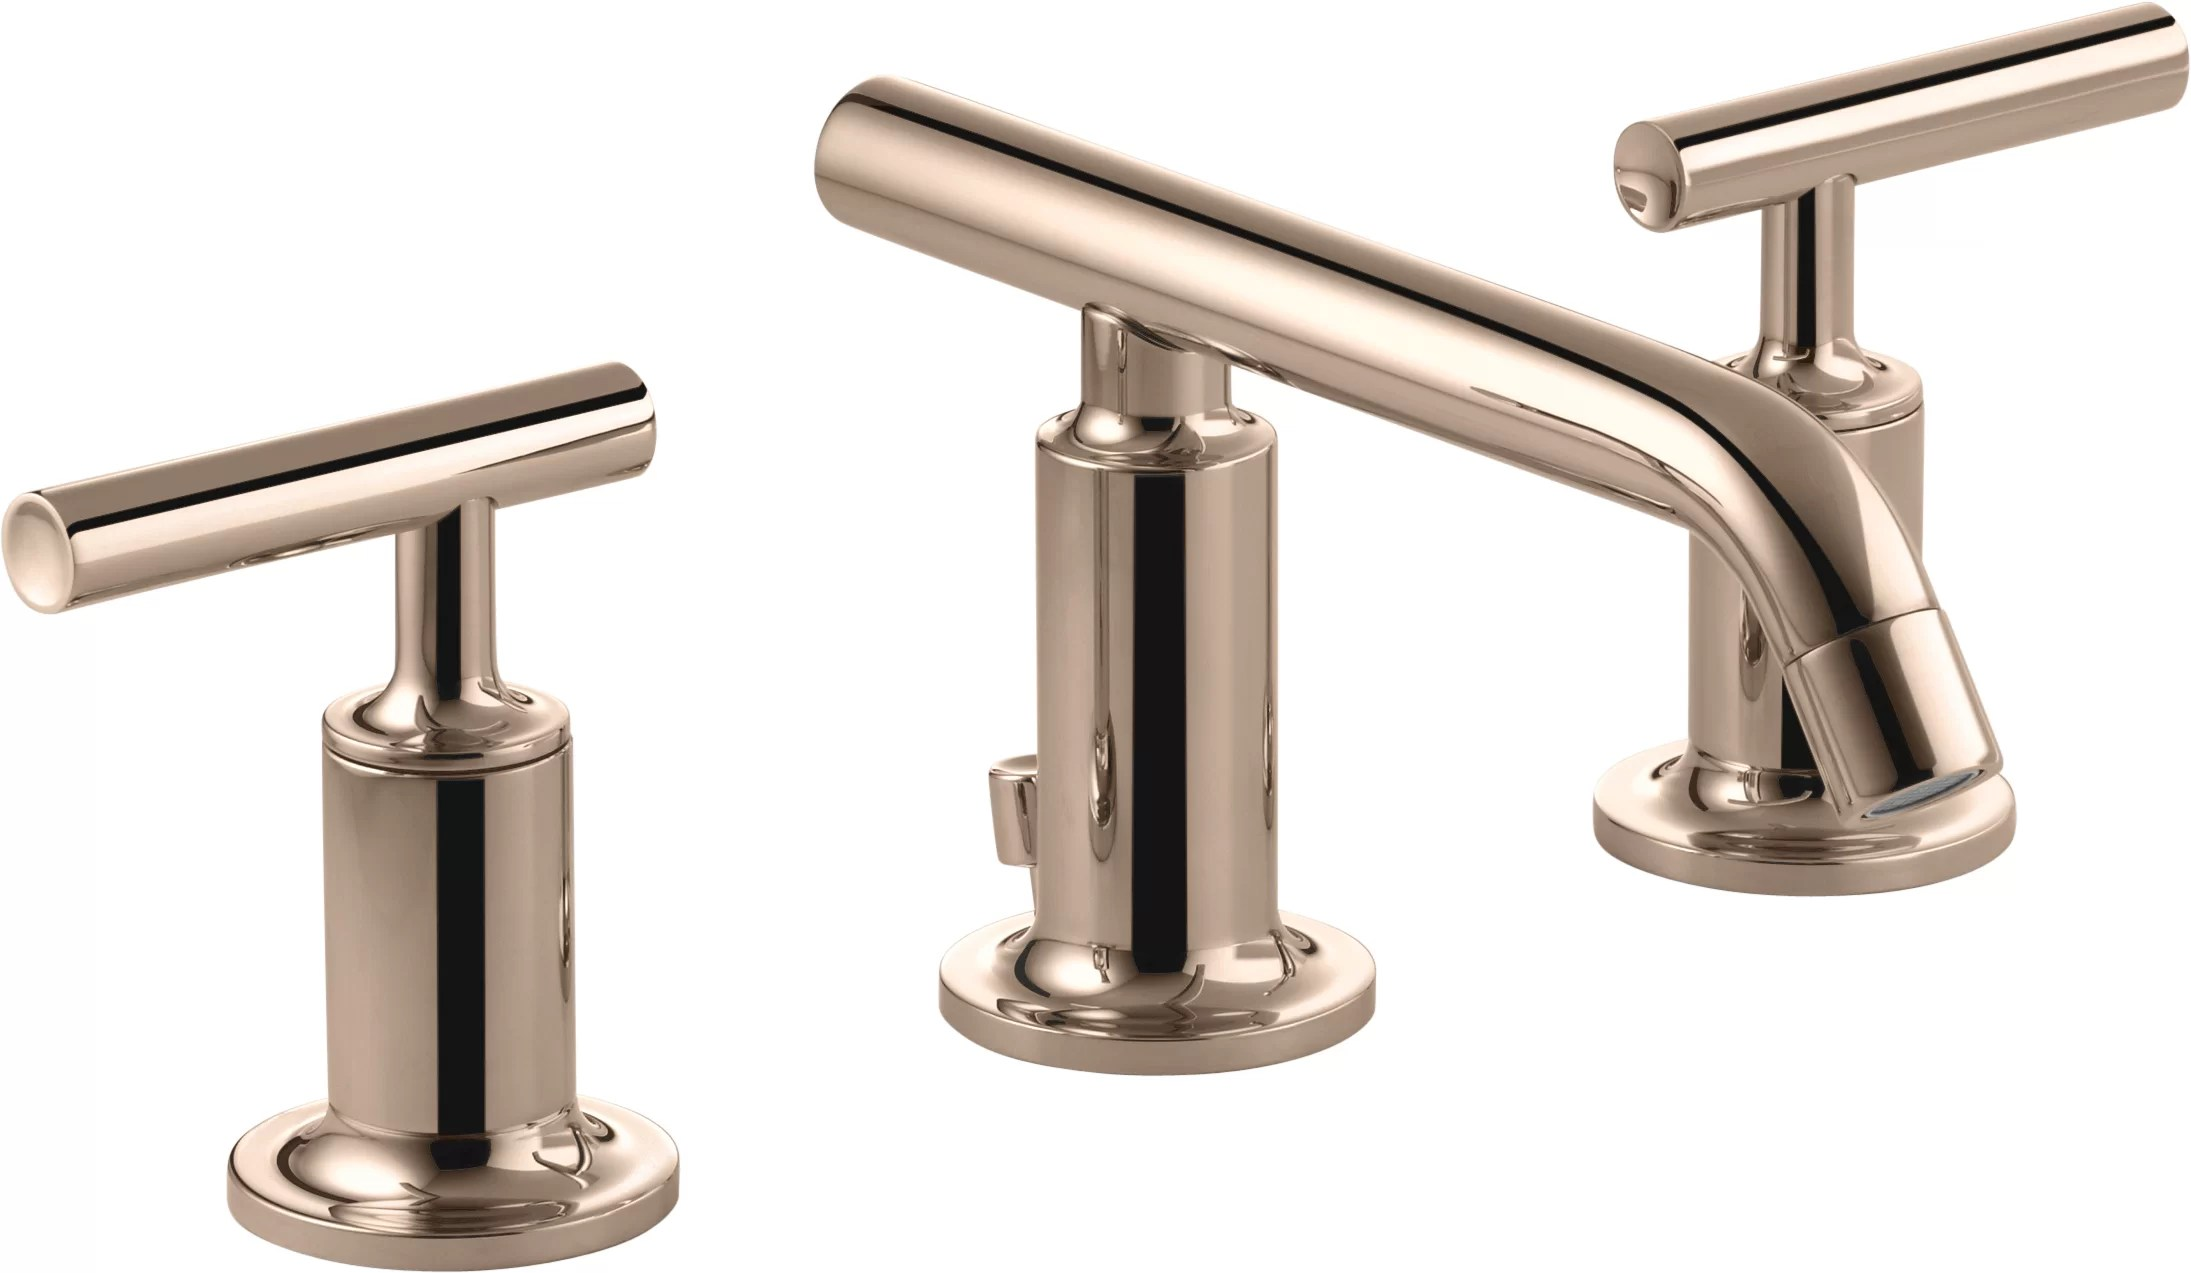 kohler purist widespread bathroom sink faucet with low lever handles and low spout